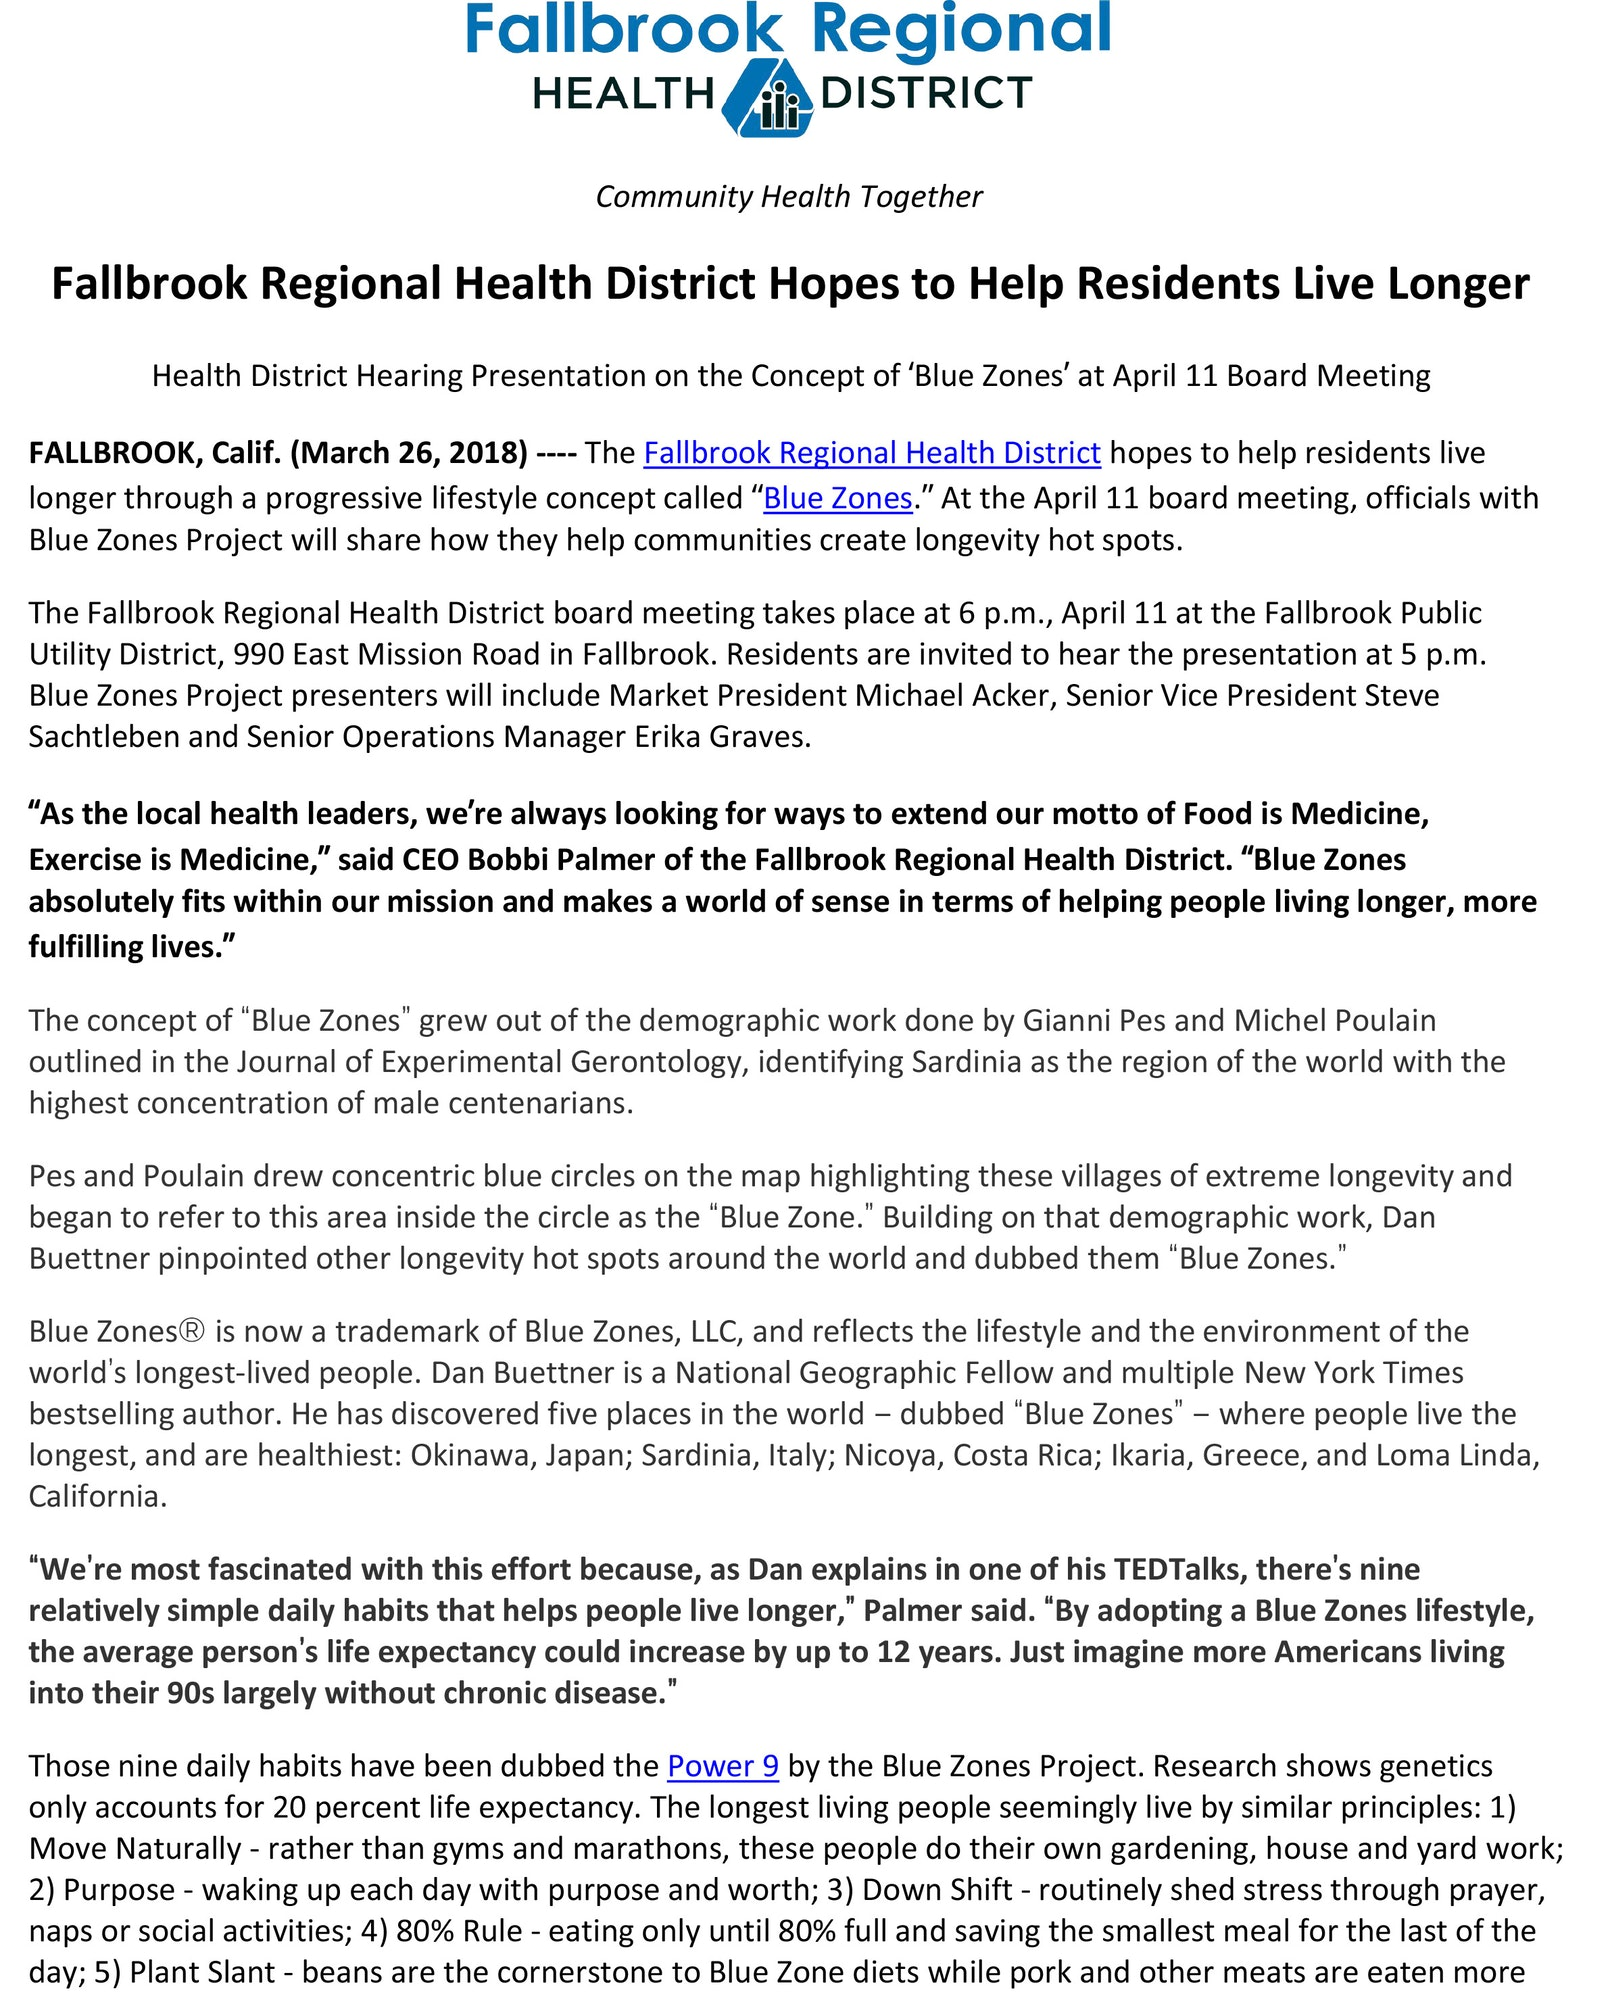 "Fallbrook Regional Health District Hopes to Help Residents Live Longer Health District Hearing Presentation on the Concept of 'Blue Zones' at April 11 Board Meeting FALLBROOK, Calif. (March 26, 2018) ---- The Fallbrook Regional Health District hopes to help residents live longer through a progressive lifestyle concept called ""Blue Zones."" At the April 11 board meeting, officials with Blue Zones Project will share how they help communities create longevity hot spots. The Fallbrook Regional Health District board meeting takes place at 6 p.m., April 11 at the Fallbrook Public Utility District, 990 East Mission Road in Fallbrook. Residents are invited to hear the presentation at 5 p.m. Blue Zones Project presenters will include Market President Michael Acker, Senior Vice President Steve Sachtleben and Senior Operations Manager Erika Graves. ""As the local health leaders, we're always looking for ways to extend our motto of Food is Medicine, Exercise is Medicine,"" said CEO Bobbi Palmer of the Fallbrook Regional Health District. ""Blue Zones absolutely fits within our mission and makes a world of sense in terms of helping people living longer, more fulfilling lives."" The concept of ""Blue Zones"" grew out of the demographic work done by Gianni Pes and Michel Poulain outlined in the Journal of Experimental Gerontology, identifying Sardinia as the region of the world with the highest concentration of male centenarians. Pes and Poulain drew concentric blue circles on the map highlighting these villages of extreme longevity and began to refer to this area inside the circle as the ""Blue Zone."" Building on that demographic work, Dan Buettner pinpointed other longevity hot spots around the world and dubbed them ""Blue Zones."" Blue Zones® is now a trademark of Blue Zones, LLC, and reflects the lifestyle and the environment of the world's longest-lived people. Dan Buettner is a National Geographic Fellow and multiple New York Times bestselling author. He has discovered five places in the world – dubbed ""Blue Zones"" – where people live the longest, and are healthiest: Okinawa, Japan; Sardinia, Italy; Nicoya, Costa Rica; Ikaria, Greece, and Loma Linda, California. ""We're most fascinated with this effort because, as Dan explains in one of his TEDTalks, there's nine relatively simple daily habits that helps people live longer,"" Palmer said. ""By adopting a Blue Zones lifestyle, the average person's life expectancy could increase by up to 12 years. Just imagine more Americans living into their 90s largely without chronic disease."" Those nine daily habits have been dubbed the Power 9 by the Blue Zones Project. Research shows genetics only accounts for 20 percent life expectancy. The longest living people seemingly live by similar principles: 1) Move Naturally - rather than gyms and marathons, these people do their own gardening, house and yard work; 2) Purpose - waking up each day with purpose and worth; 3) Down Shift - routinely shed stress through prayer, naps or social activities; 4) 80% Rule - eating only until 80% full and saving the smallest meal for the last of the day; 5) Plant Slant - beans are the cornerstone to Blue Zone diets while pork and other meats are eaten more"